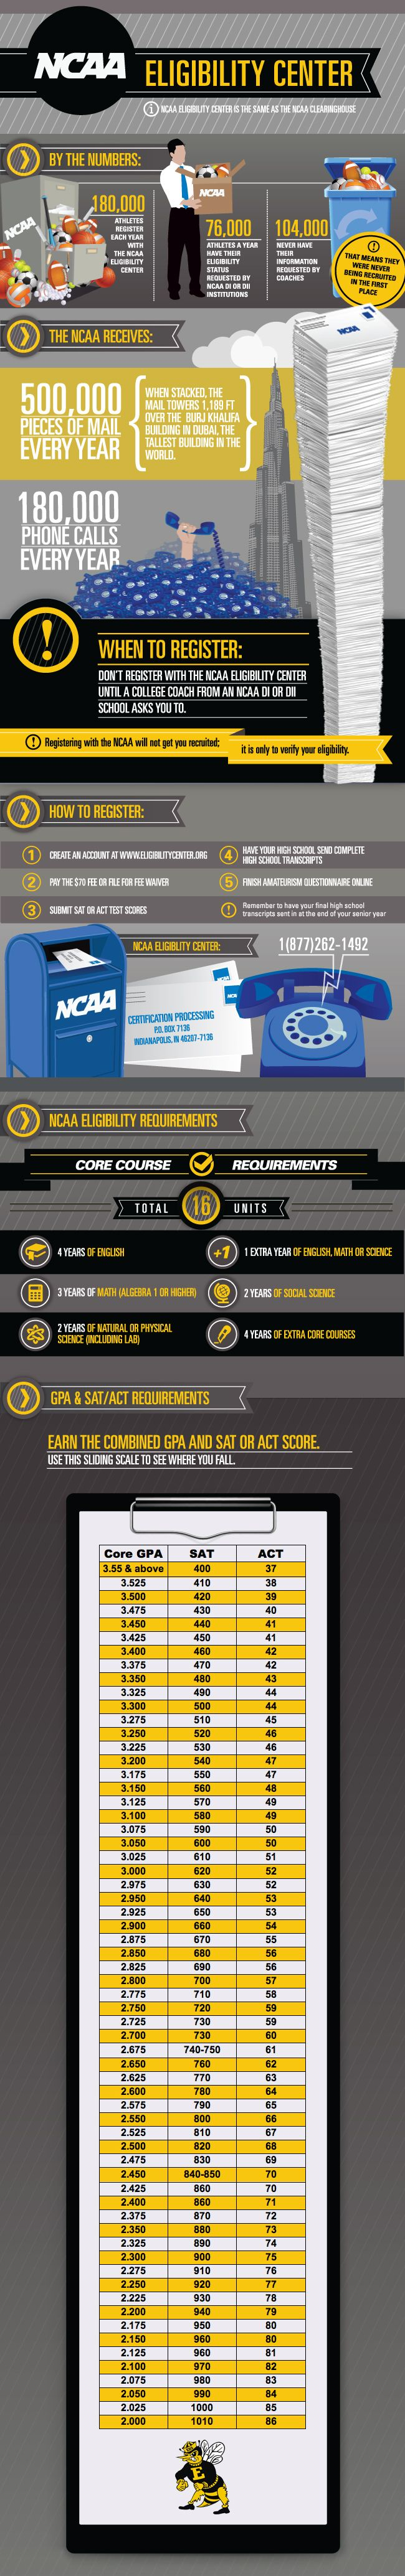 NCAA eligibility center information for recruits – Ncaa Eligibility Worksheet